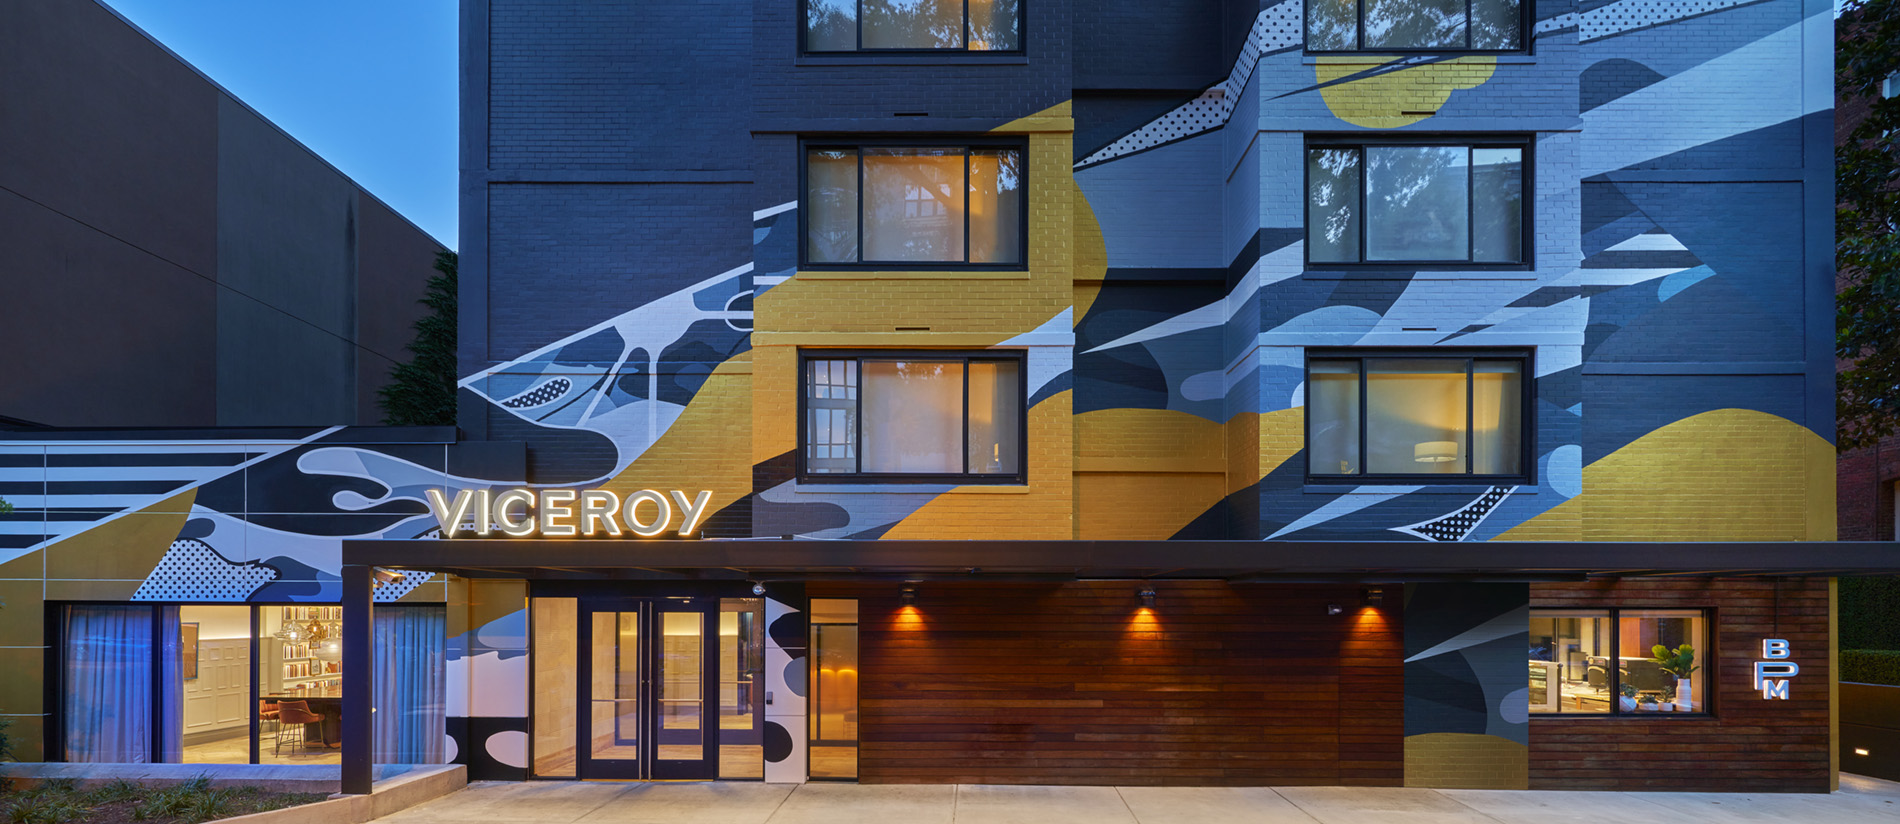 A striking mural by local artist Brandon Hill, co-founder of No Kings Collective, greets guests and neighbors. Photo Credit: Mike Schwartz Photography